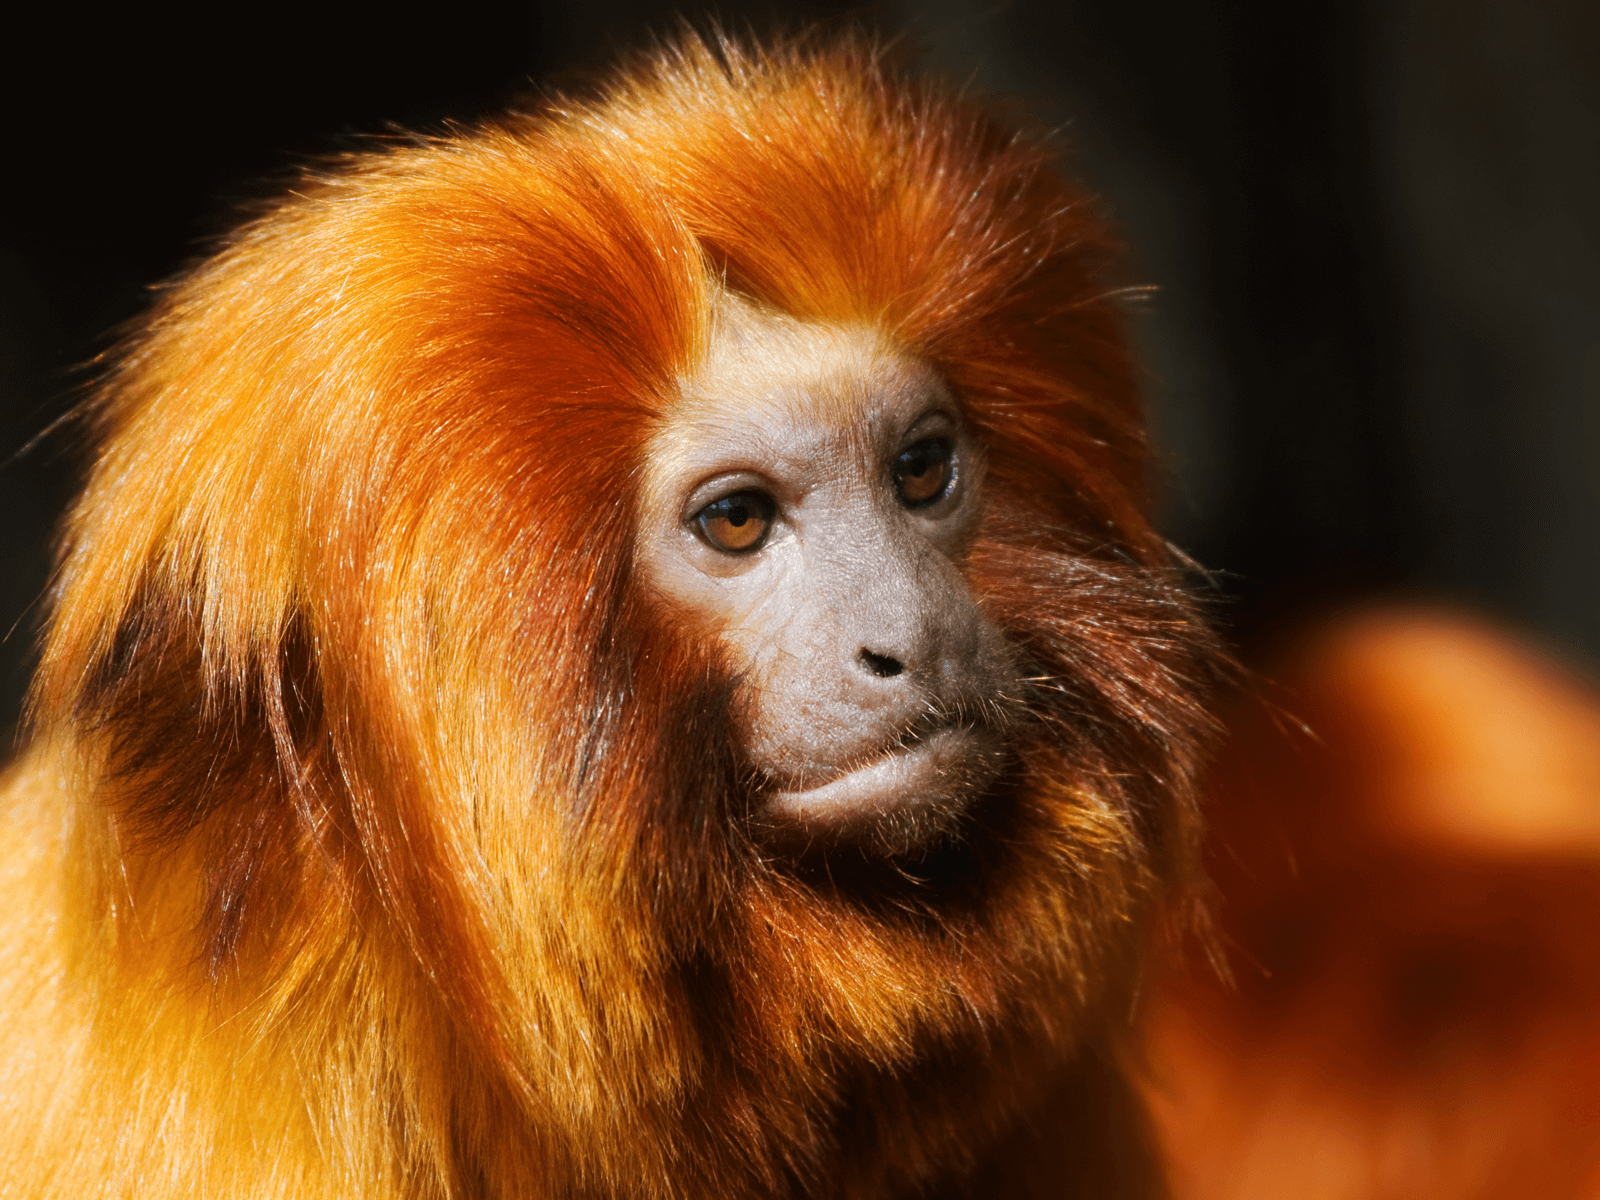 Amazon Rainforest Animals-Golden Lion Tamarin